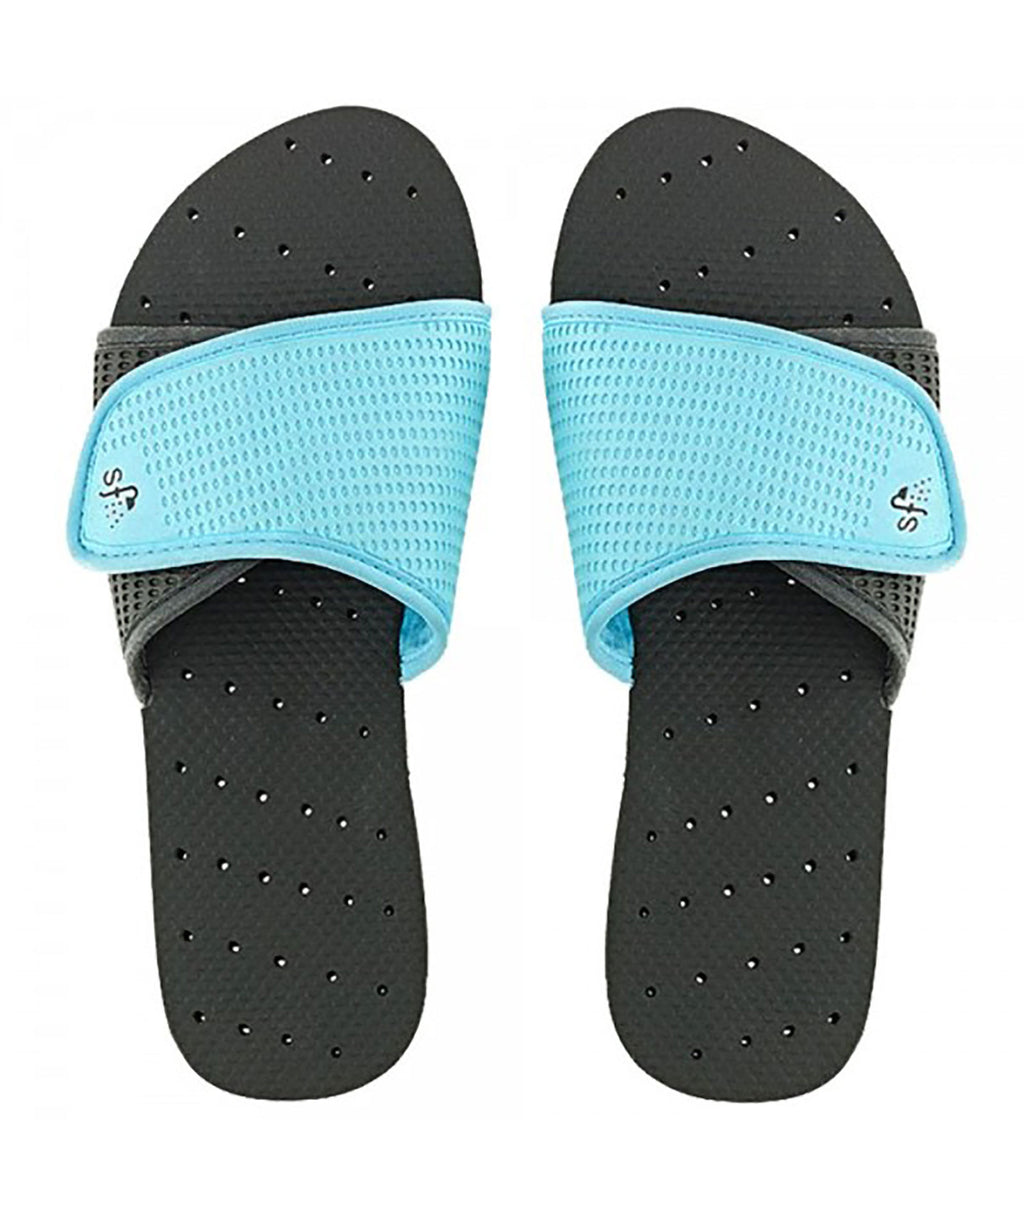 ce580a3ff Showaflops Black and Turquoise Slides - Frankie s on the Park